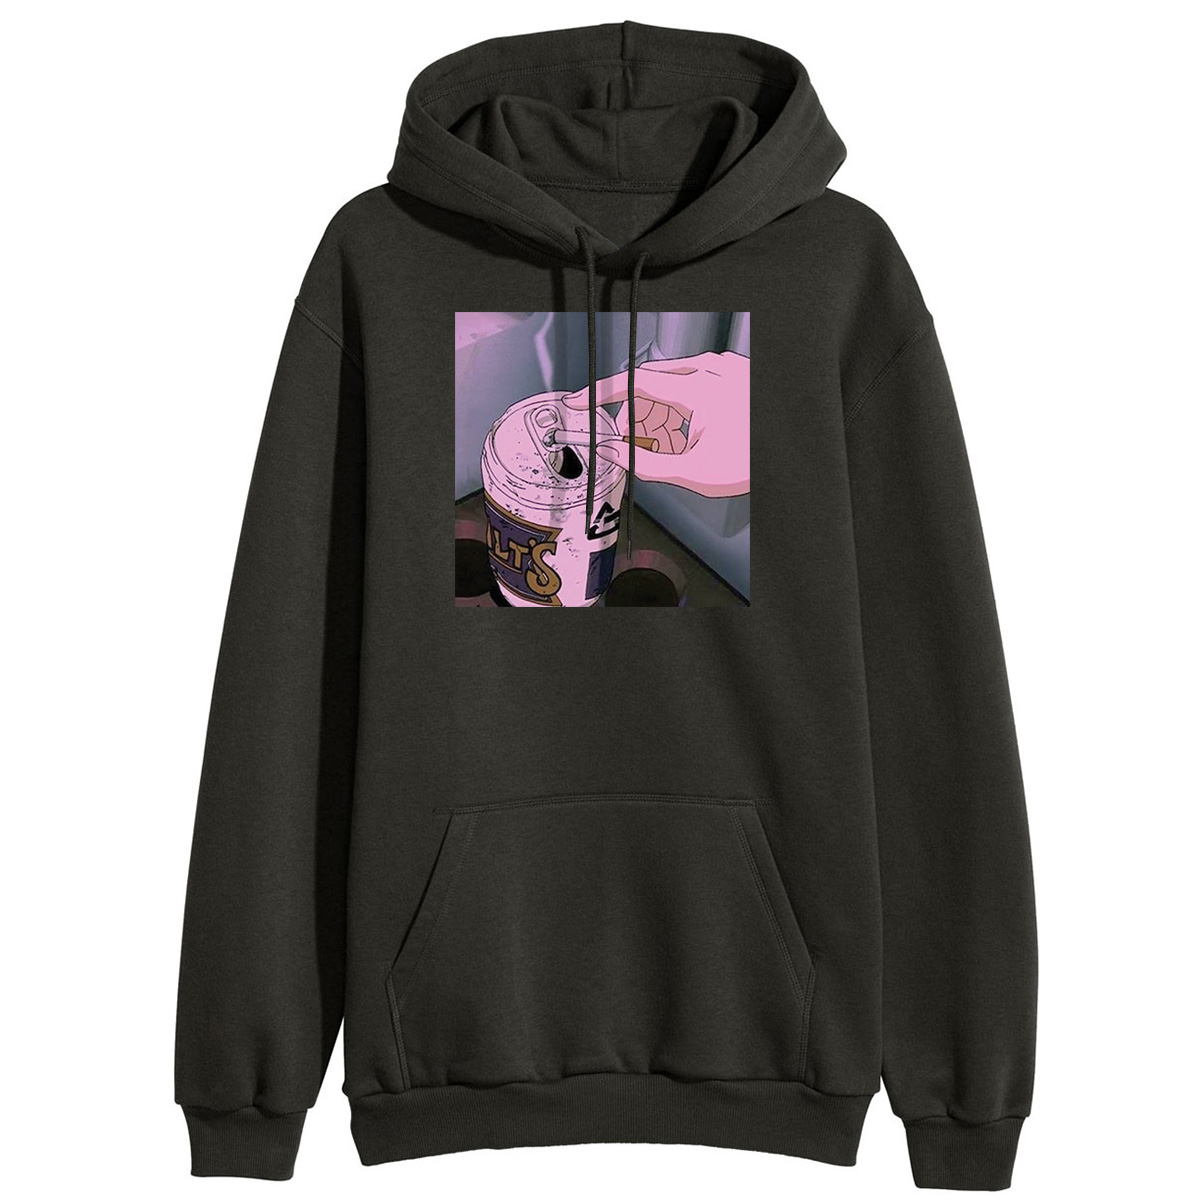 Sad Anime Vaporwave Hoodie Women Winter Hooded Sweatshirts Aesthetic Japan Otaku Hoodie Casual Sweatshirt Fleece Pullover